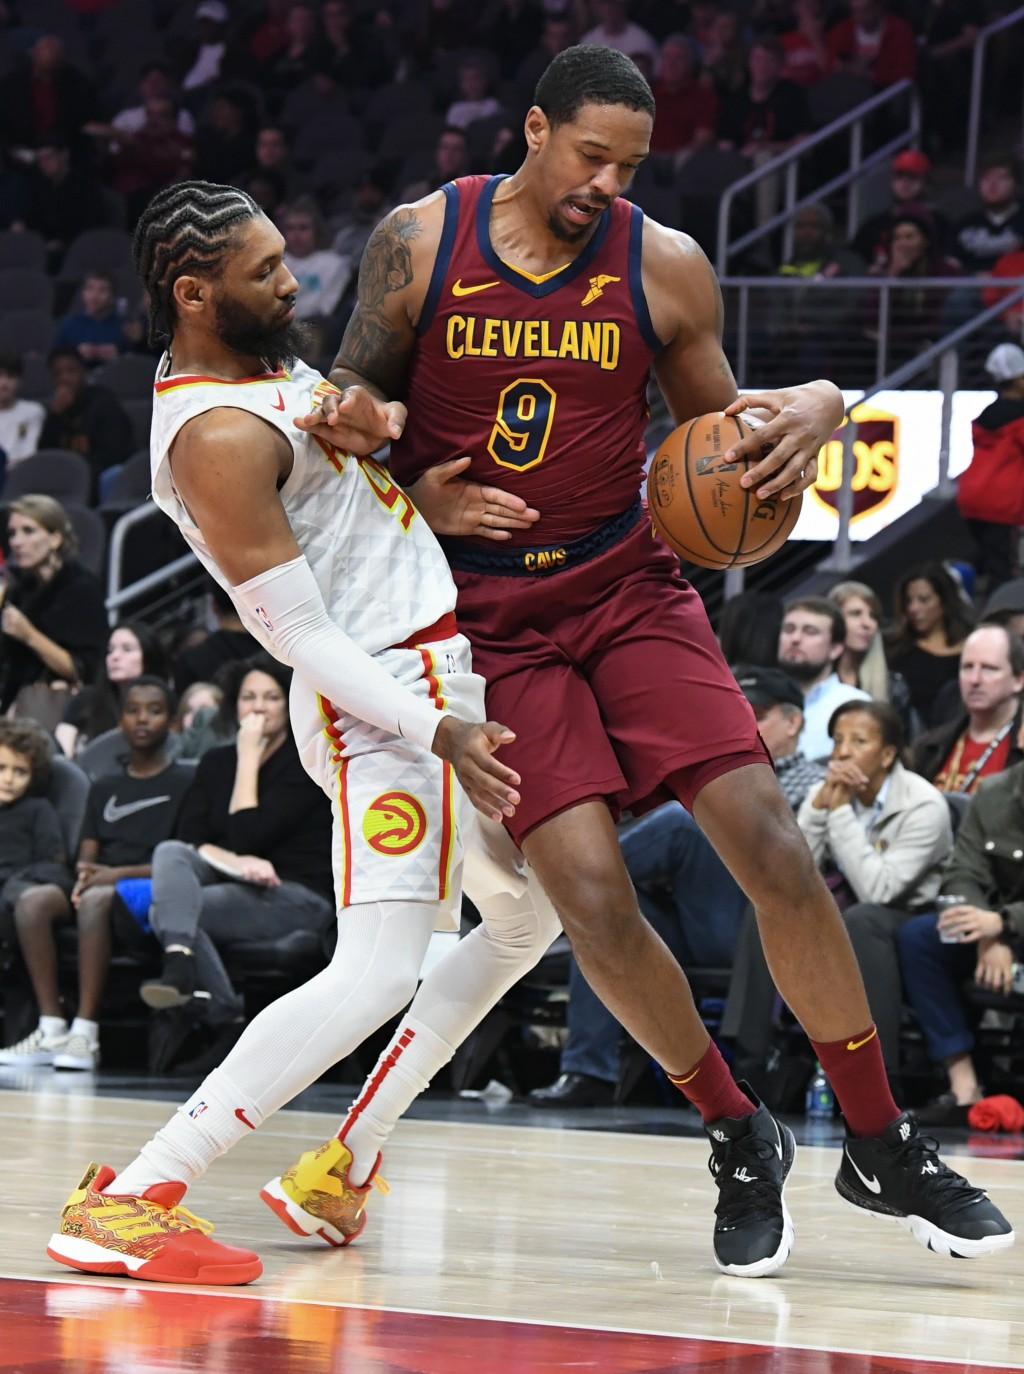 Cleveland Cavaliers forward Channing Frye (9) is defended by Atlanta Hawks forward DeAndre' Bembry during the first half of an NBA basketball game, Sa...